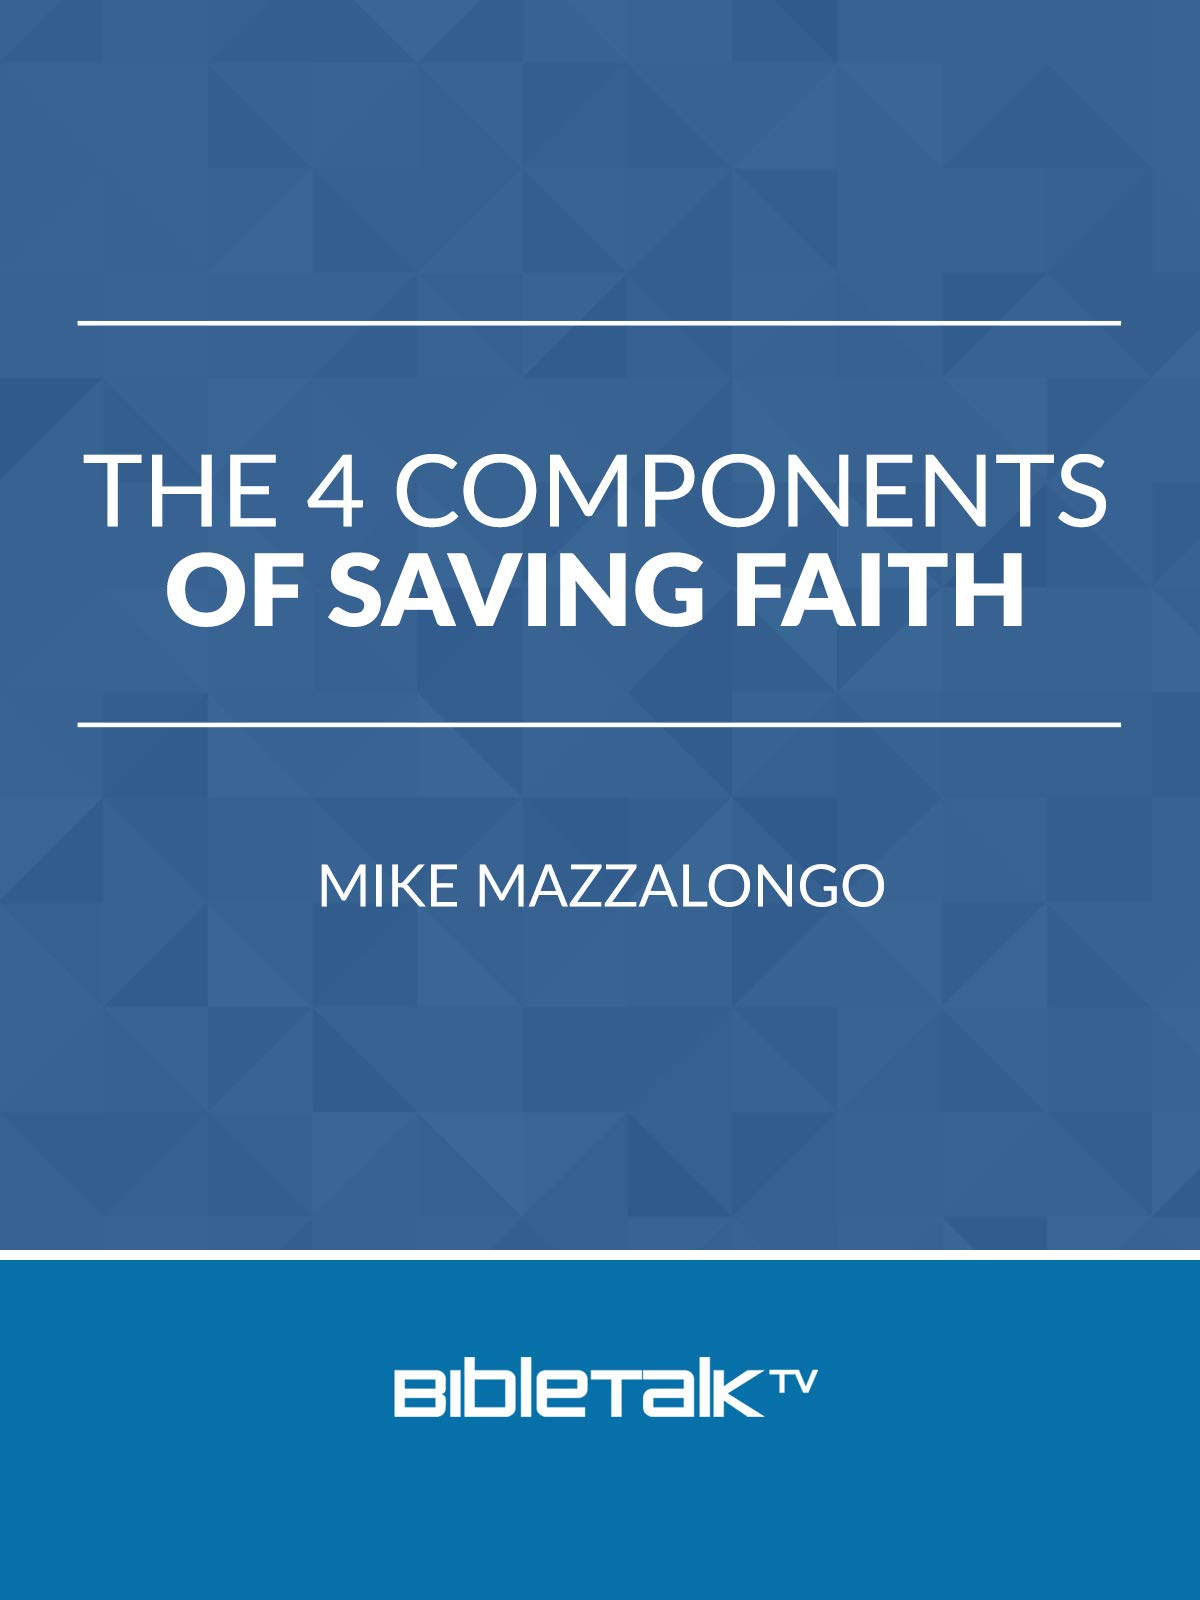 The 4 Components of Saving Faith